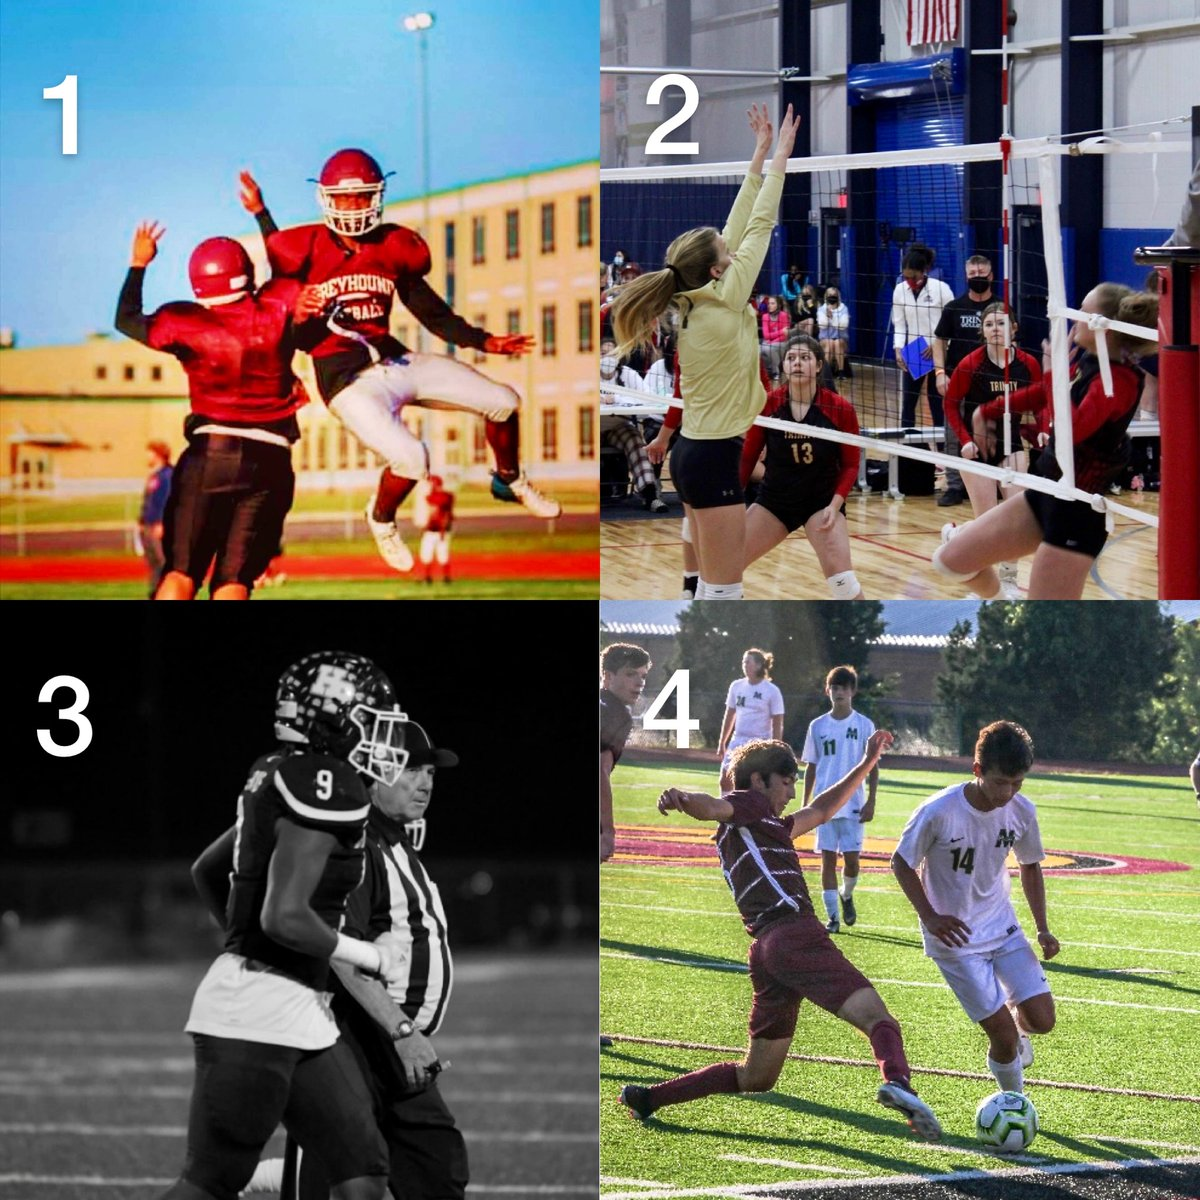 It's the FINAL countdown 😤 #POTW  Comments the @ of your favorite picture in the comments to vote for who wins this weeks #POTW  Post with #POTW on the Sports Thread App to be featured ⬇️⬇️  1. @19xFire 2. @AshlynVolley 3. @ReaganLemons9 4. @LoganRFolk